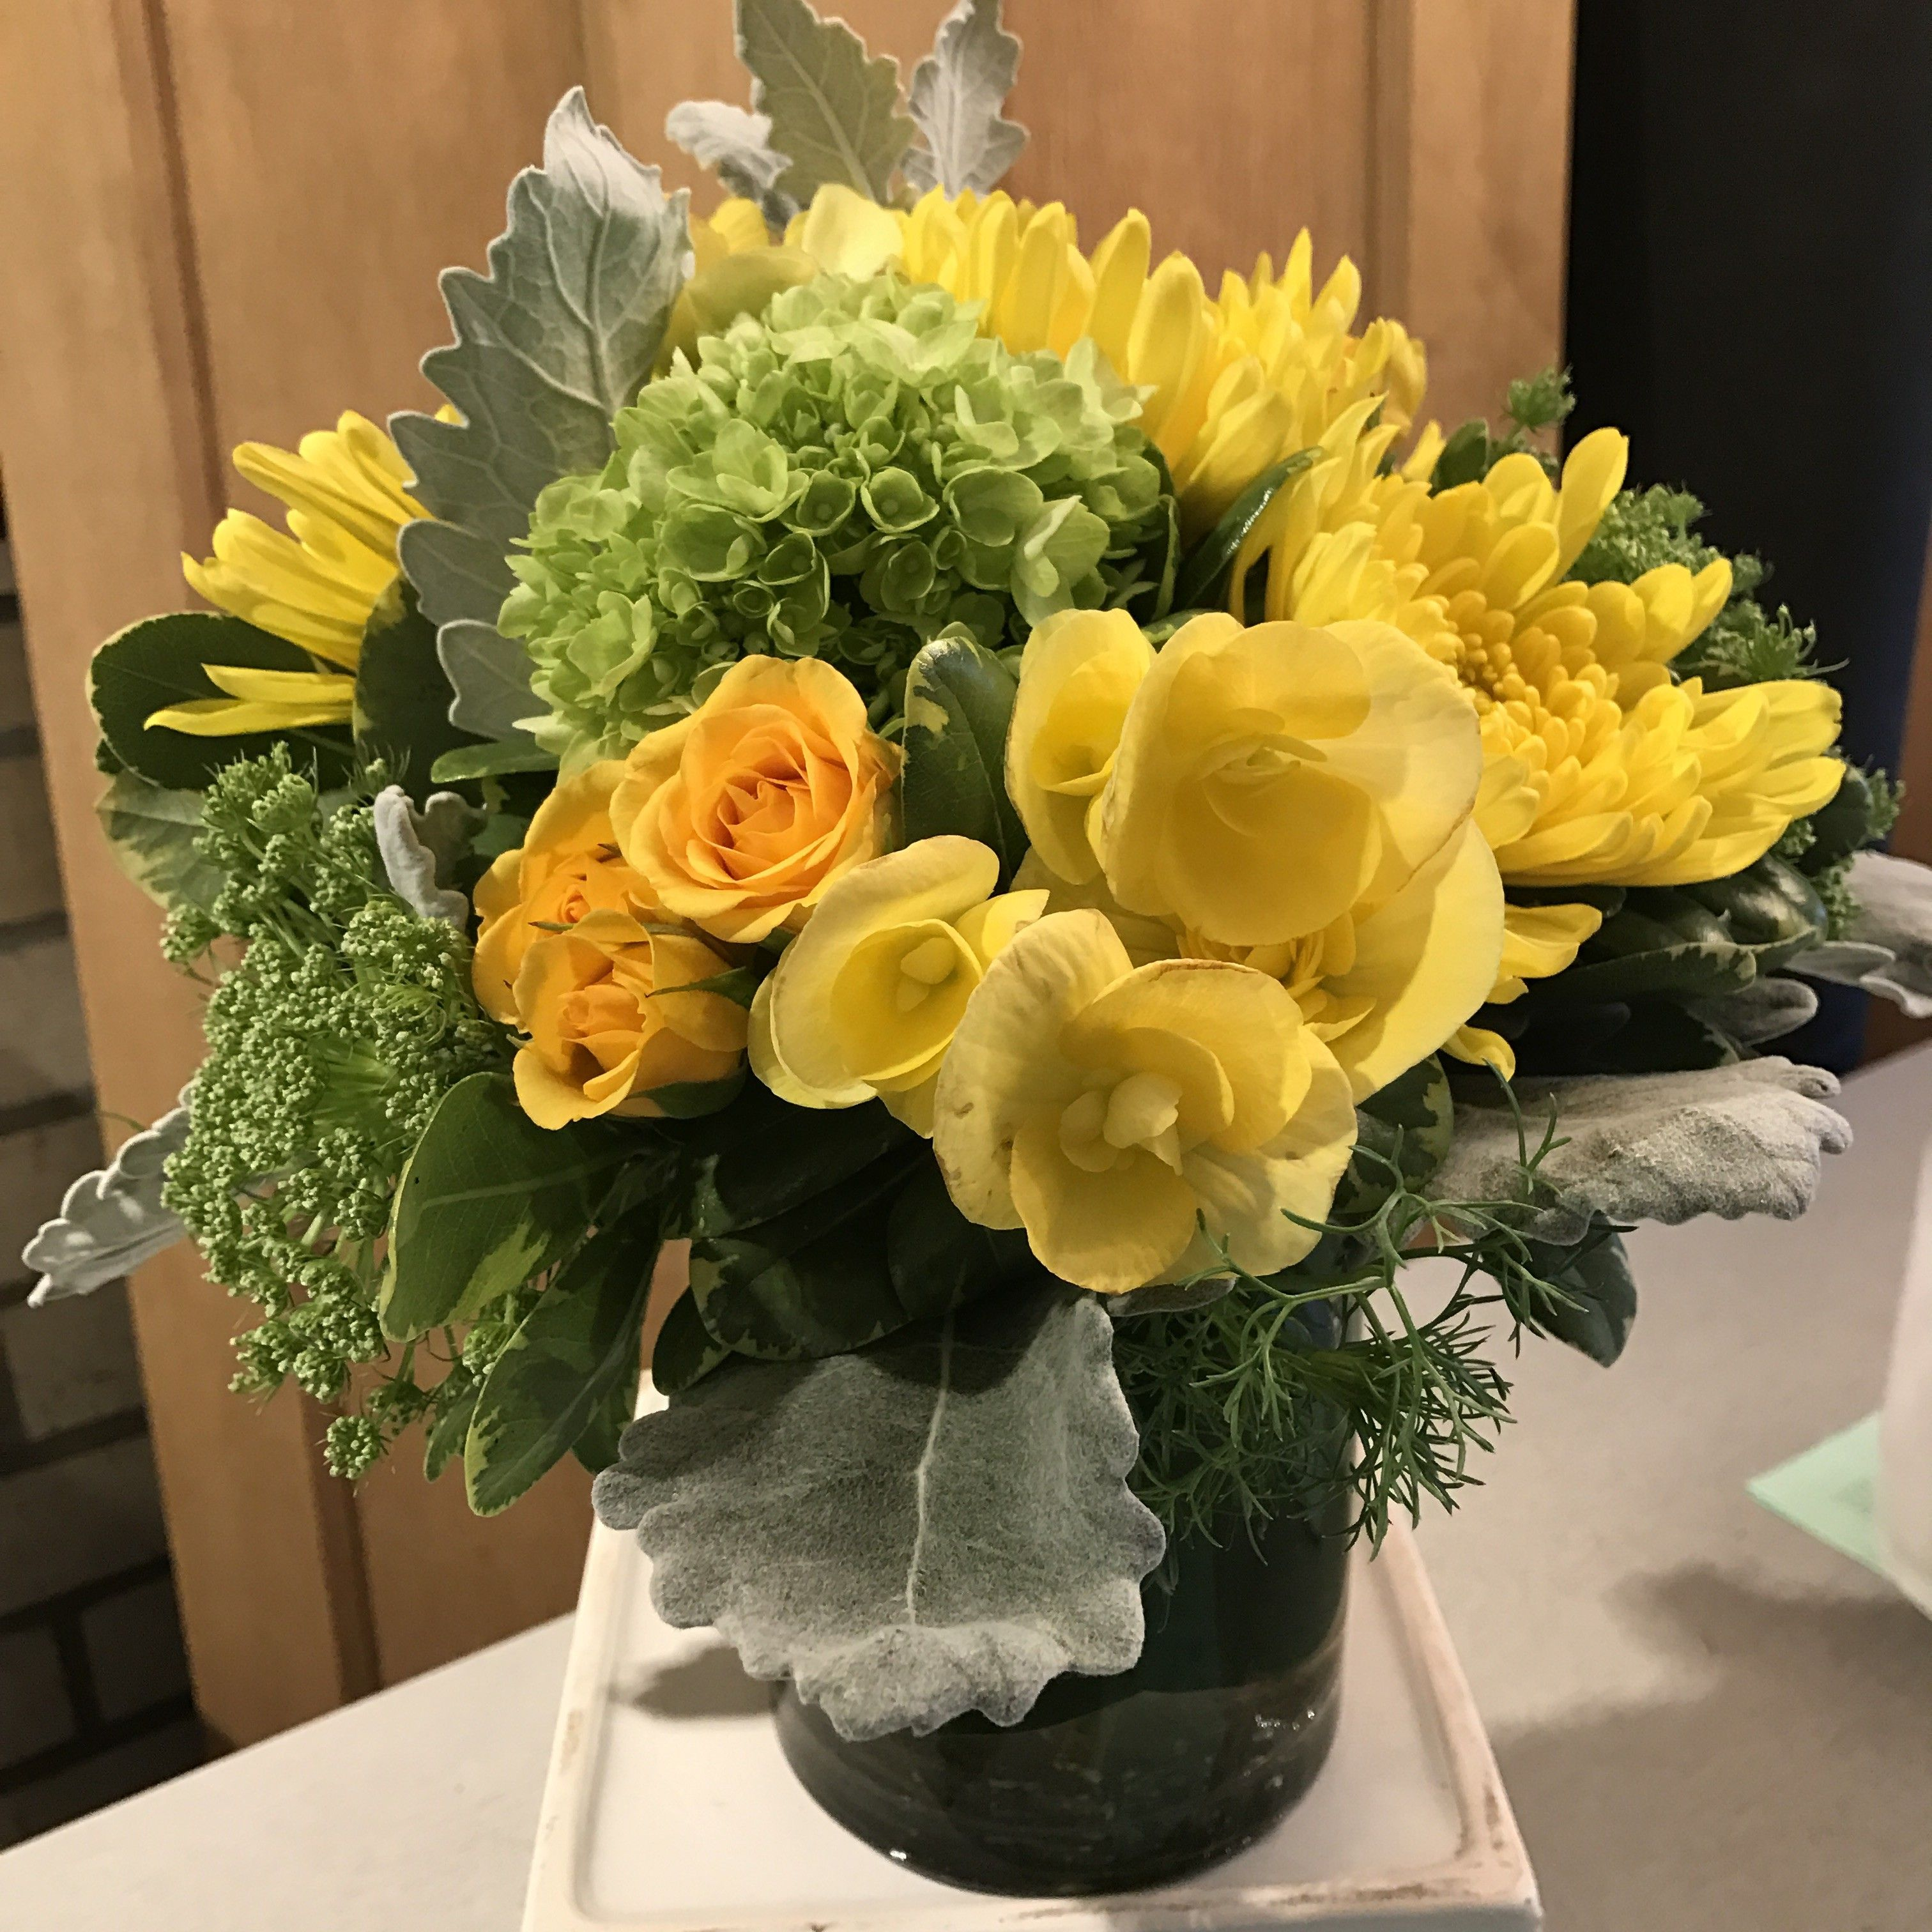 Small Desk Or Bedside Table Florals In Seattle Wa Fiori Floral Design Floral Floral Arrangements Small Desk